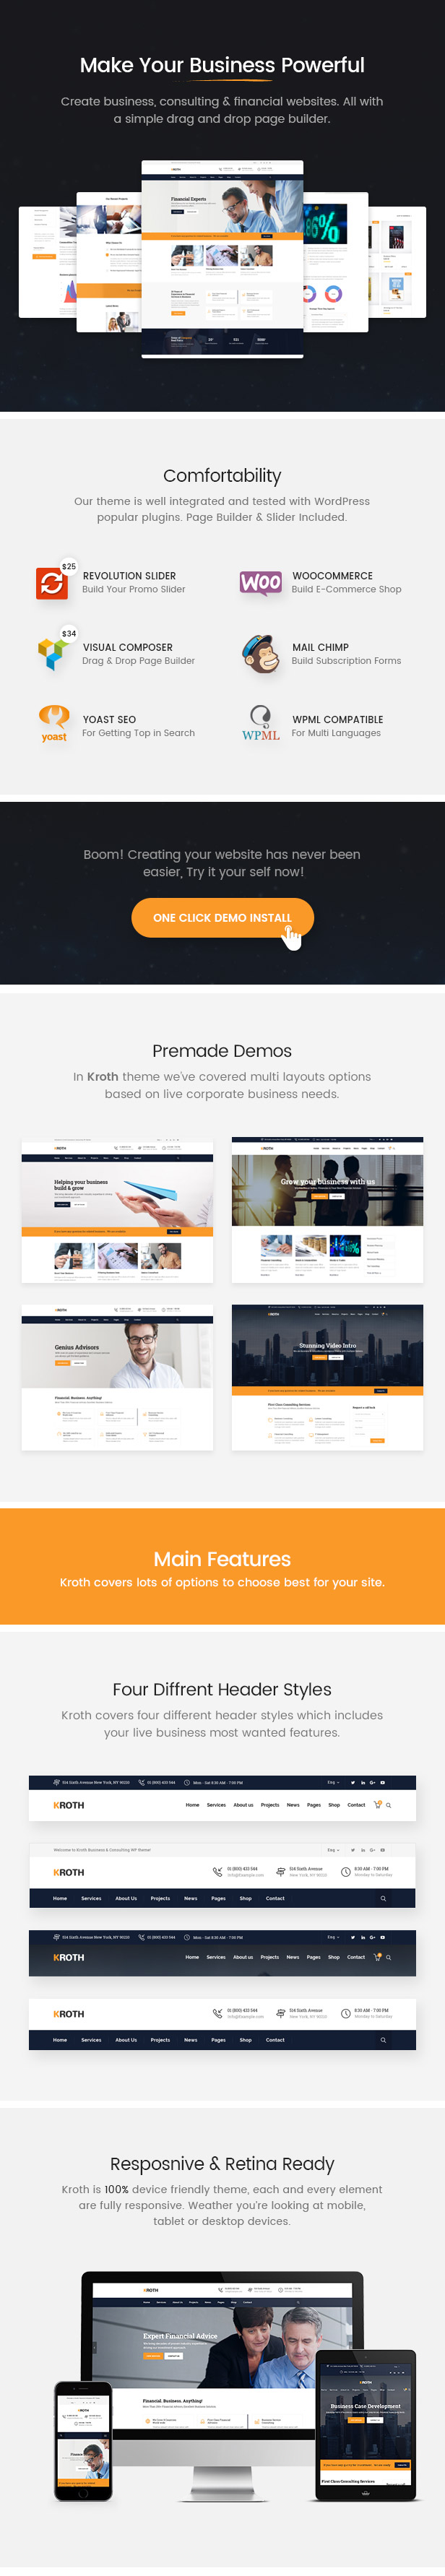 Kroth Theme Main Features